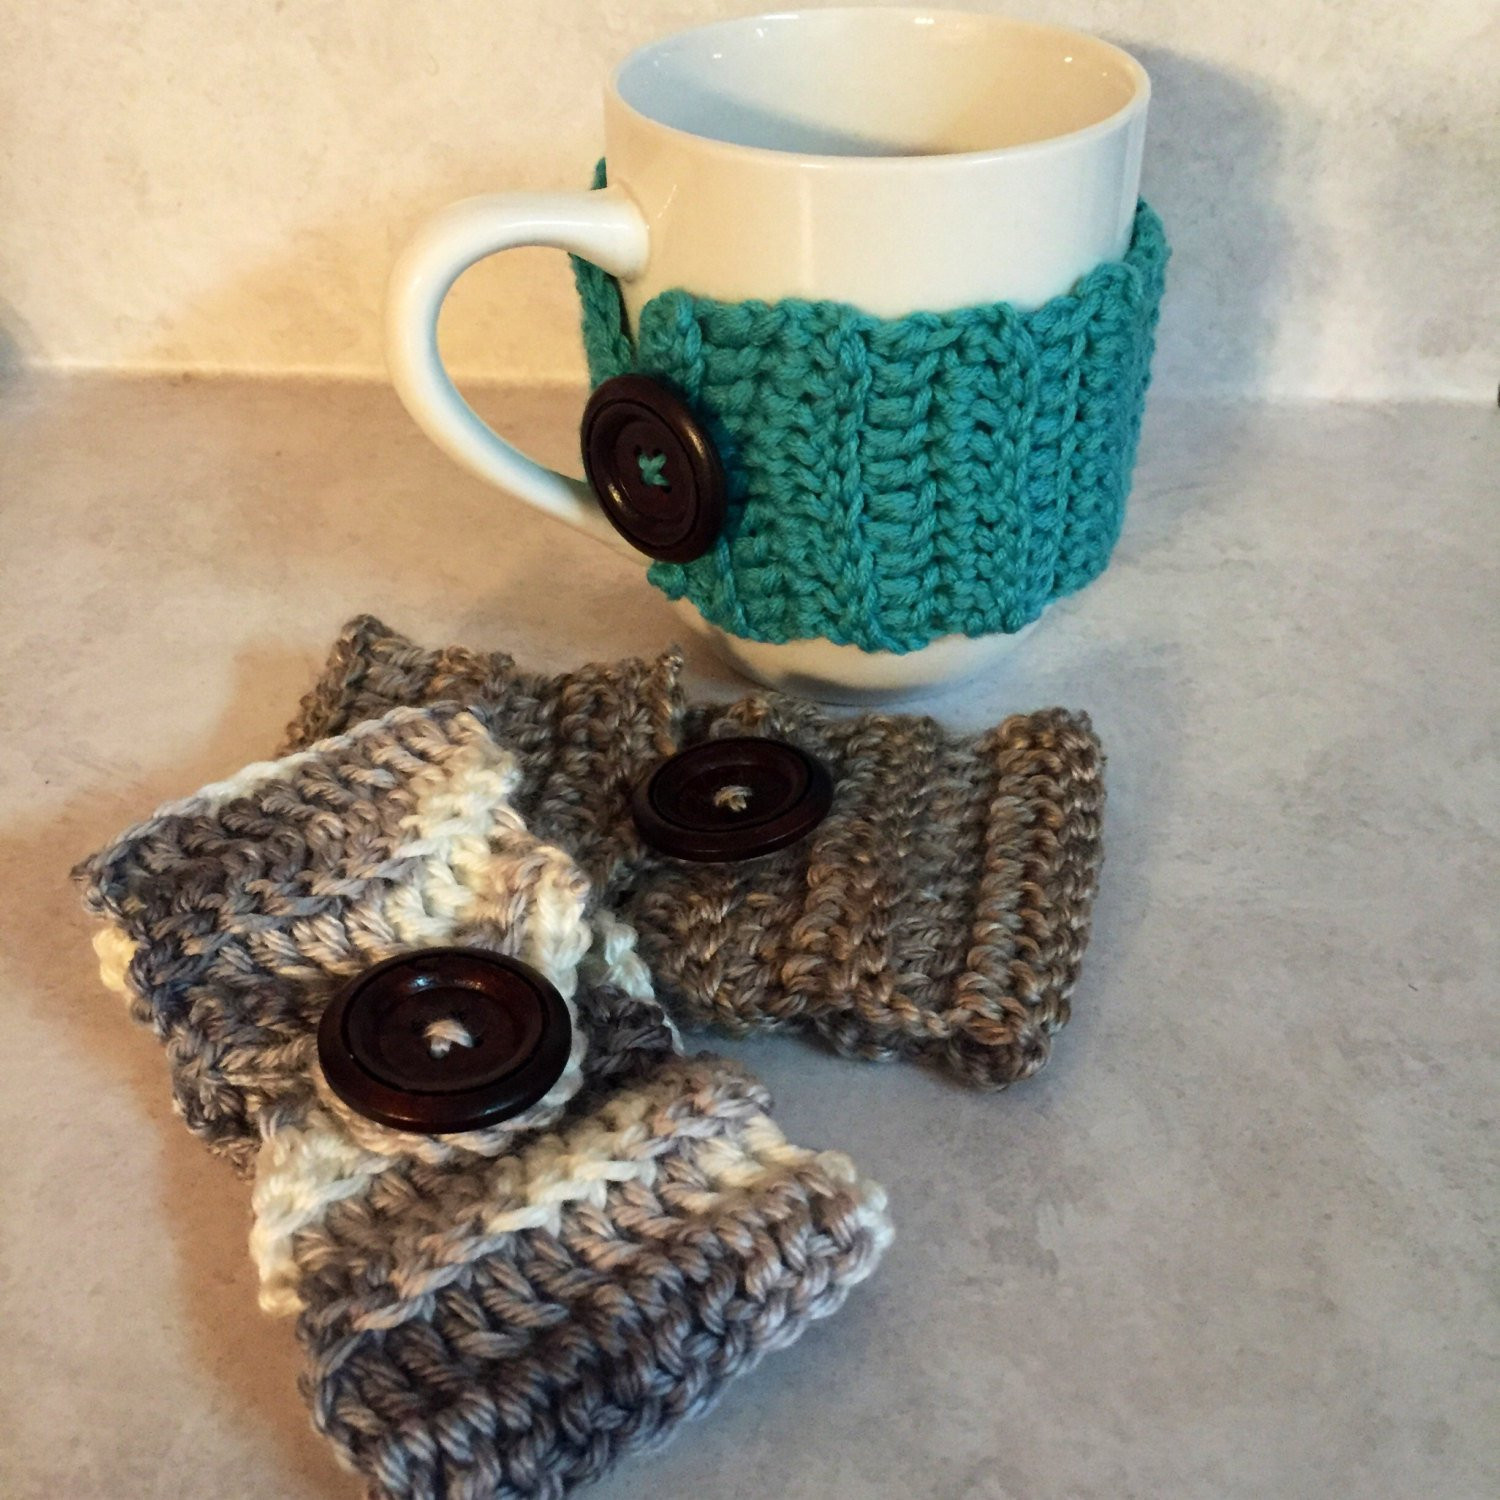 Crochet Coffee Cup Cozy New Crochet Tea Cozy Coffee Cup Sleeve Coffee Sleeve Mug Cozy Of Crochet Coffee Cup Cozy Inspirational 35 Easy Crochet Patterns